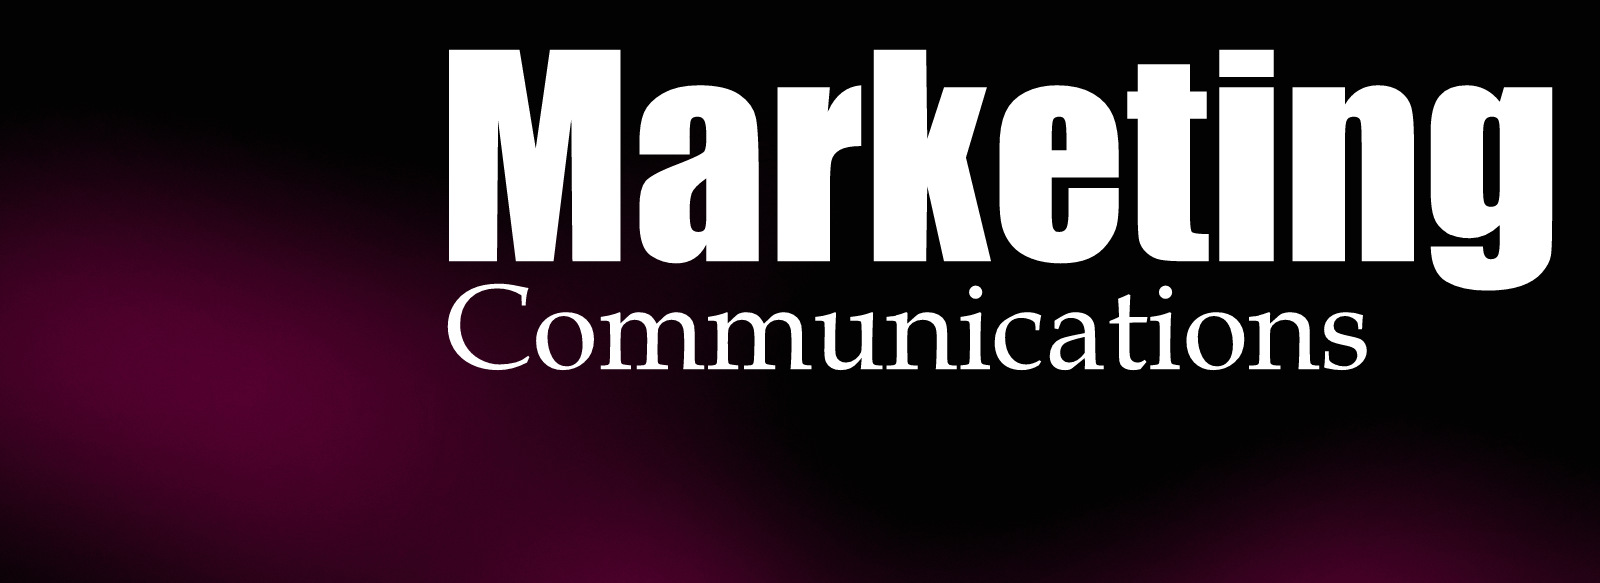 masters in marketing communication Master of science in marketing analysis (msma) online marketing programs - rankings and accreditation popular careers in marketing there are many career options for marketing majors you can pursue advertising, brand management, consulting, communications, just to name a few.